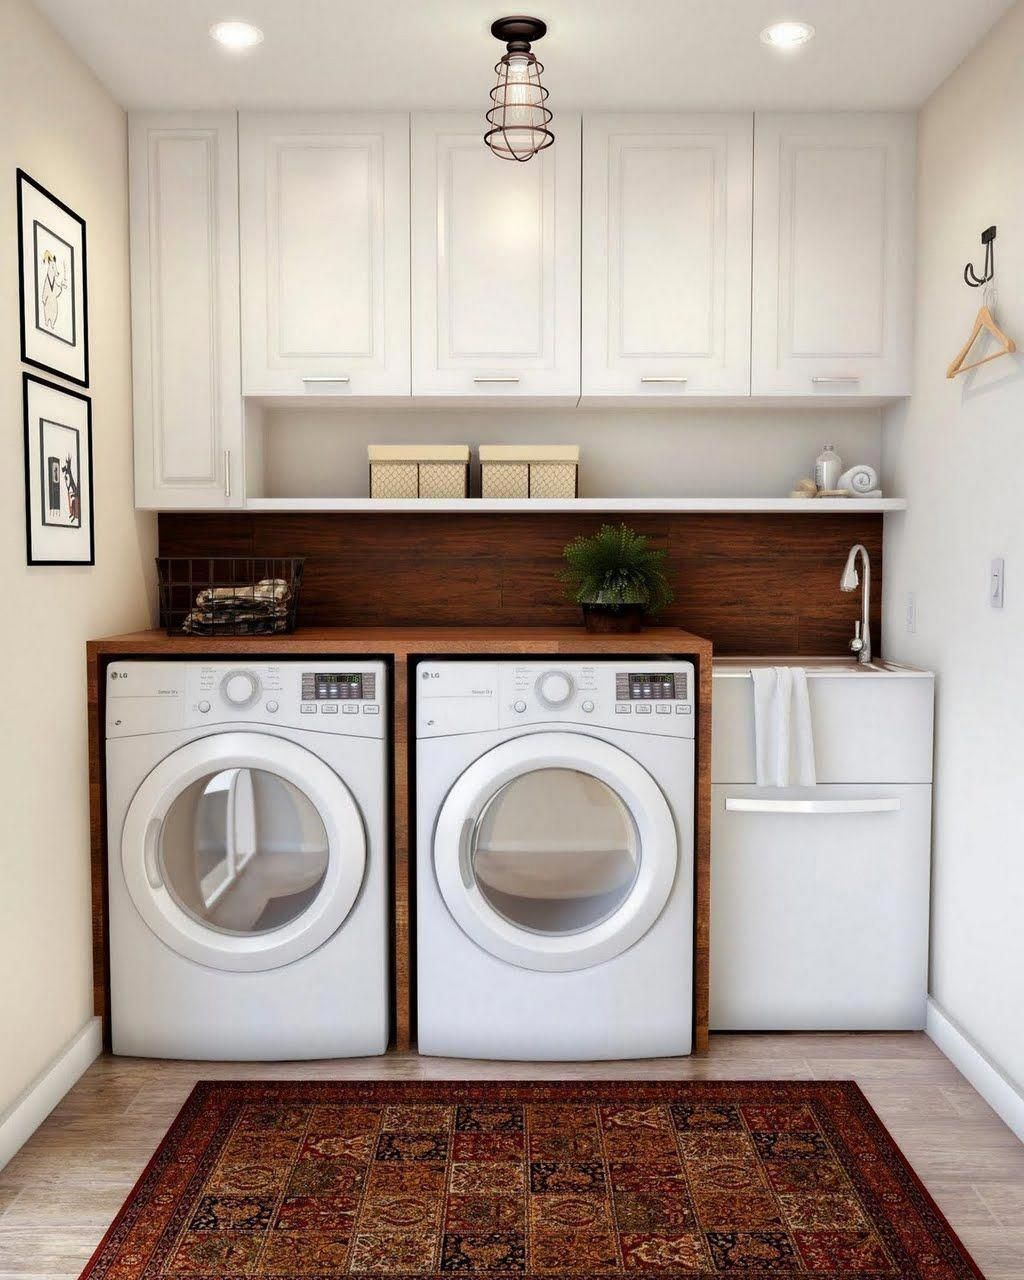 Presenza All In One 24 2 In X 21 3 In X 33 8 In Stainless Steel Utility Sink And Large White Drawer Cabinet Ql040 To Do Or Create In 2019 White Laundry Rooms Laundry Room